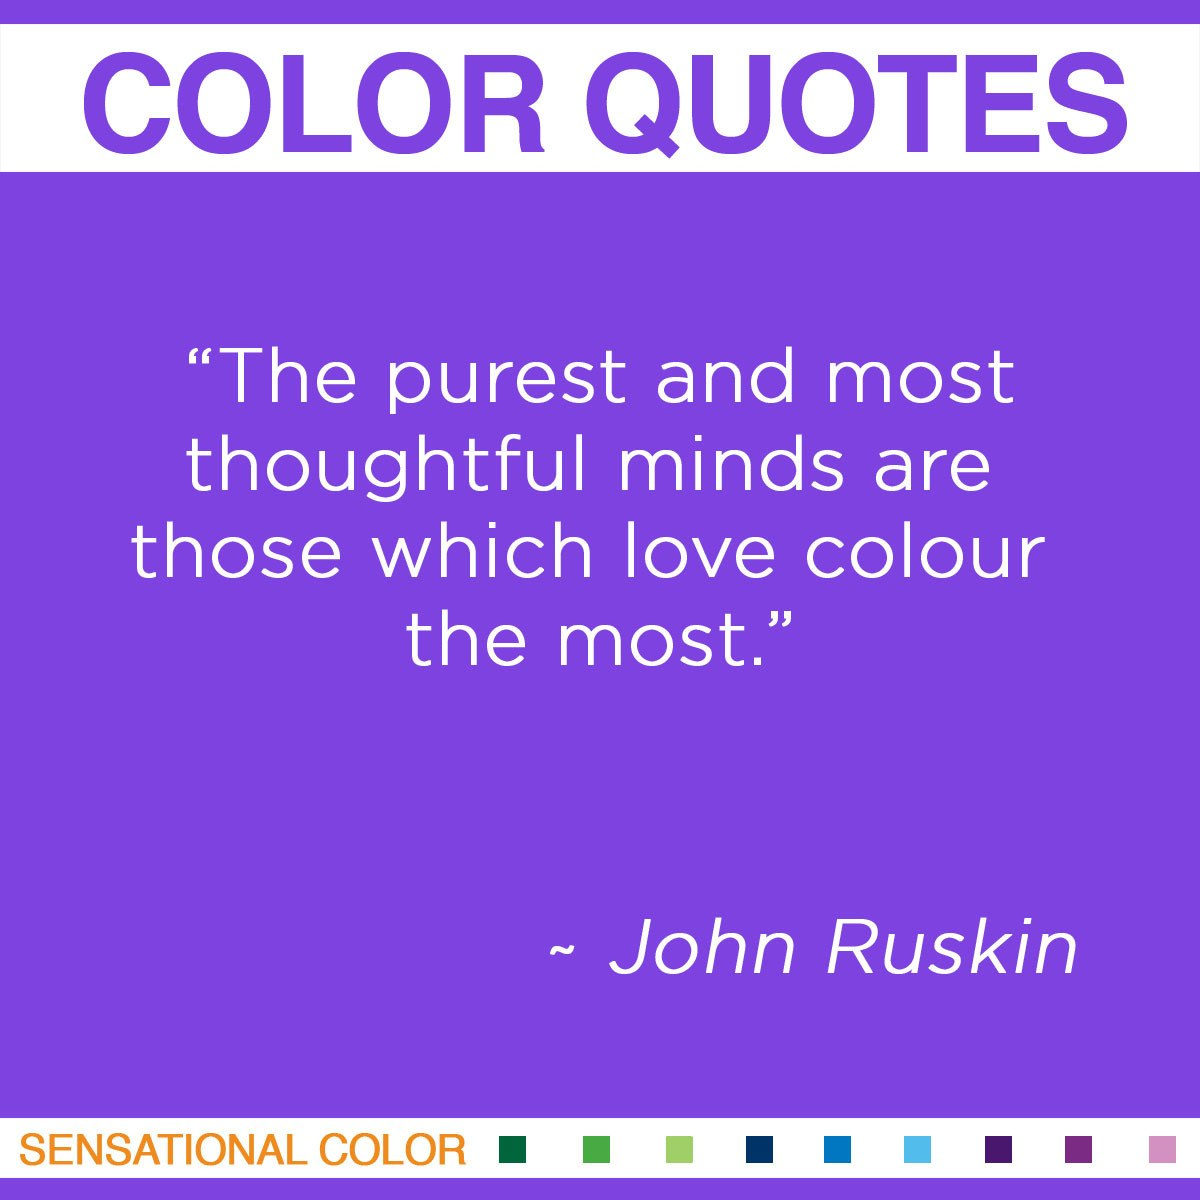 """The purest and most thoughtful minds are those which love colour the most."" - John Ruskin"